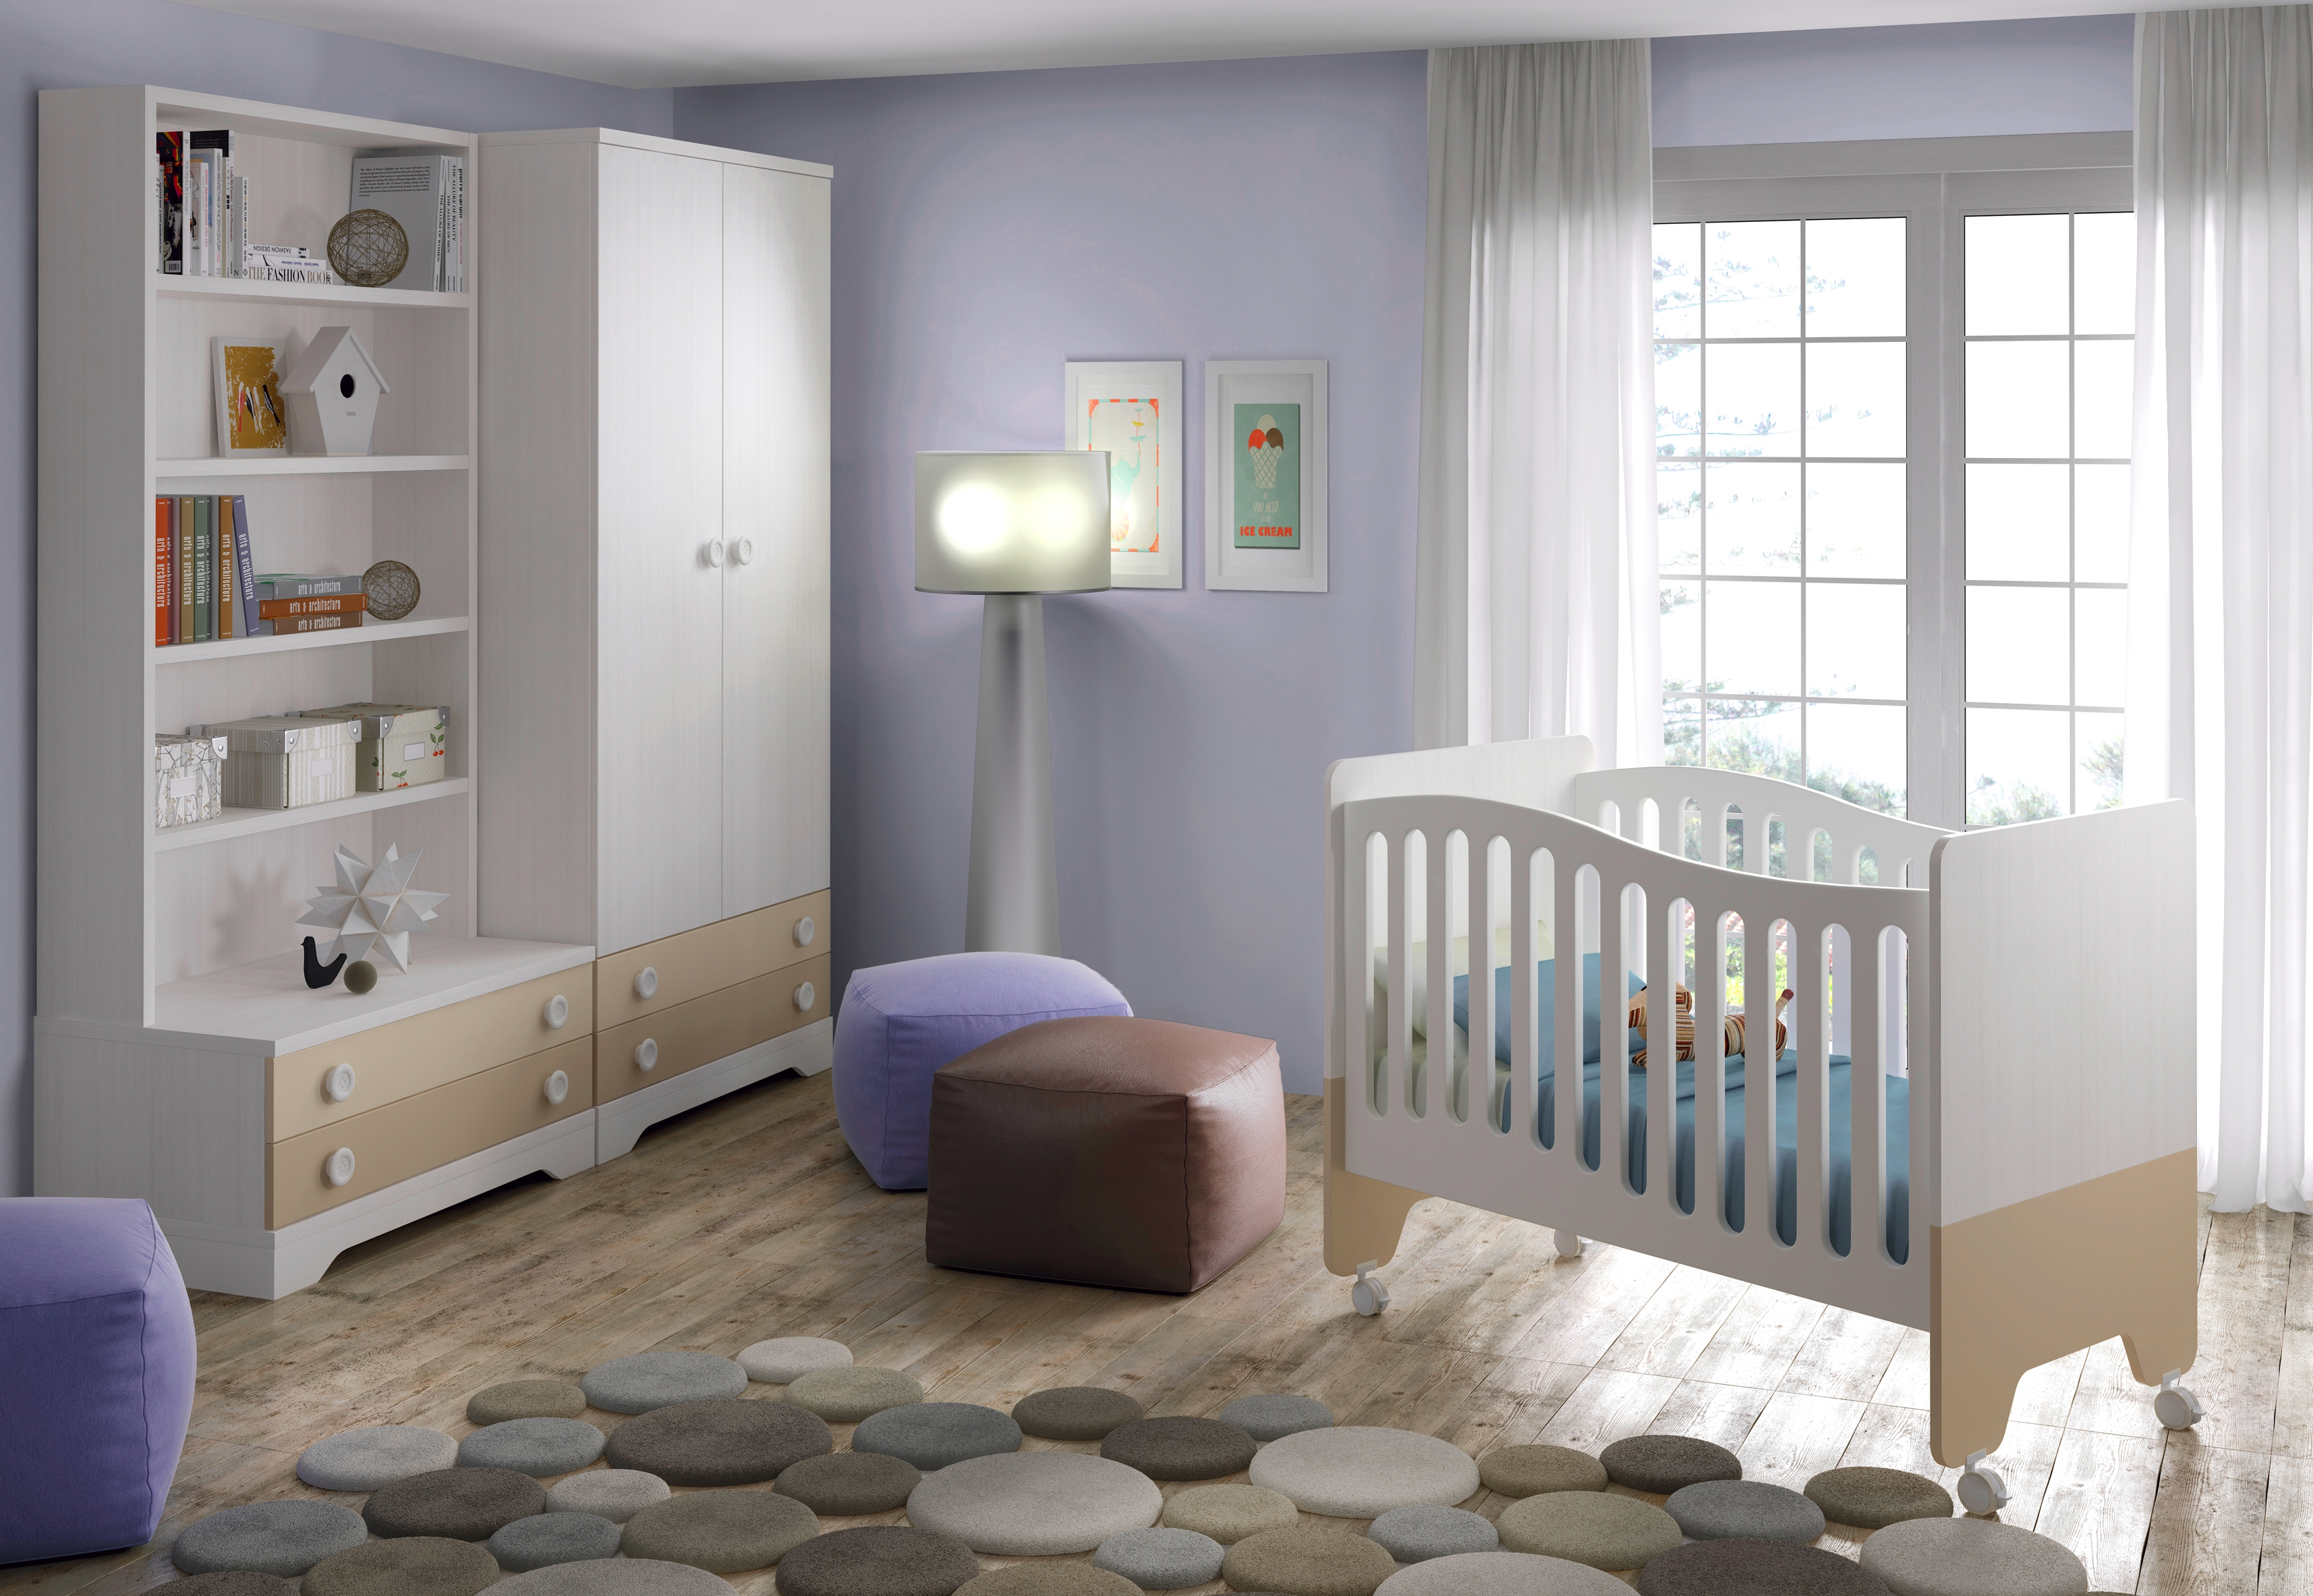 Chambre b b design bicouleur fun et color e glicerio for Chambre de fille conforama